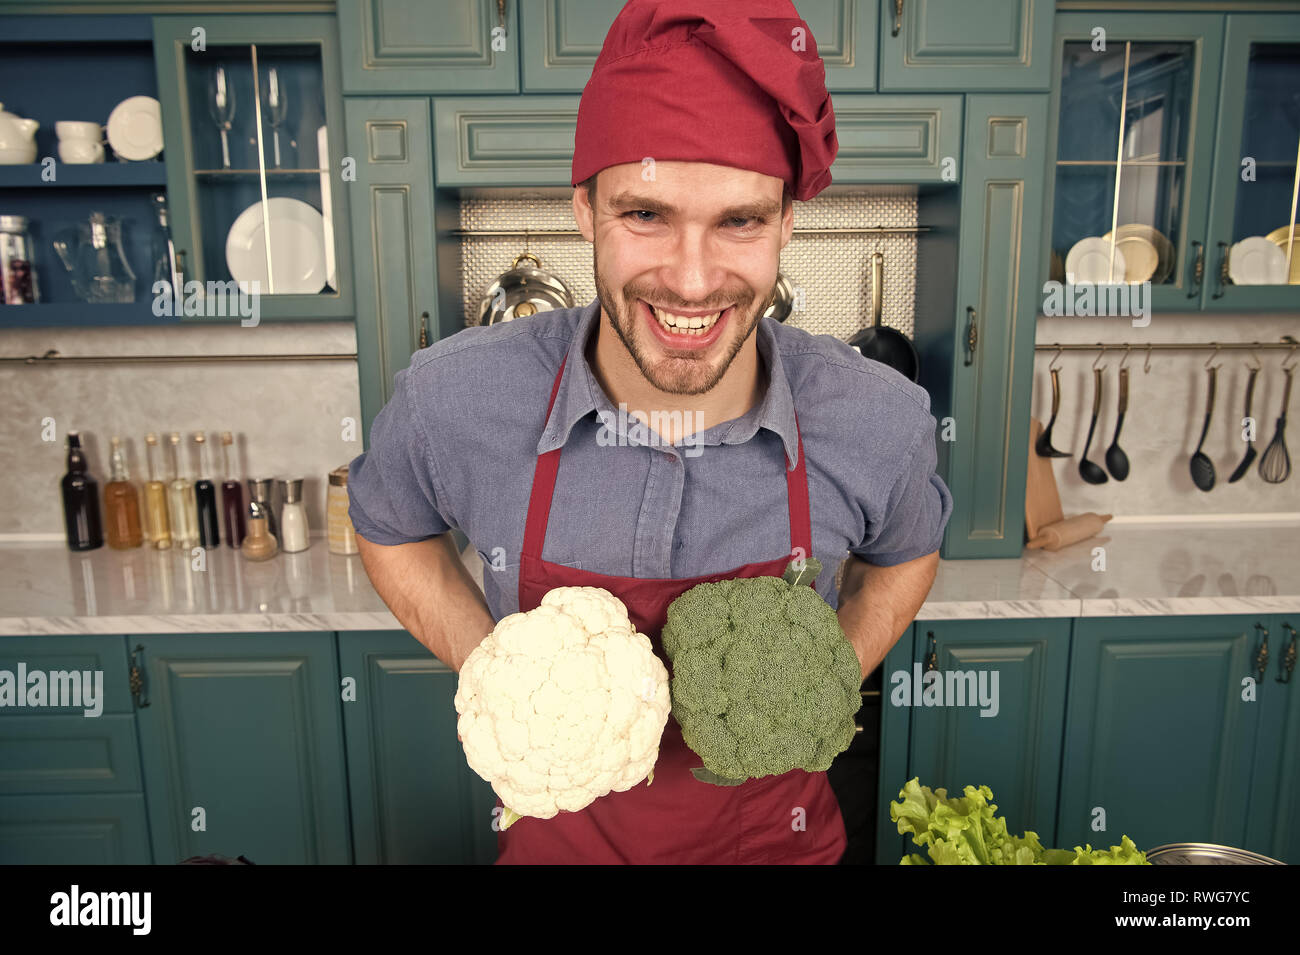 Substitute carefully. Although substitutions seem obvious they can be tricky business. Ruined dish is waste of time. Man chef substitutes broccoli with cauliflower. Chef smiling knows kitchen tricks. - Stock Image